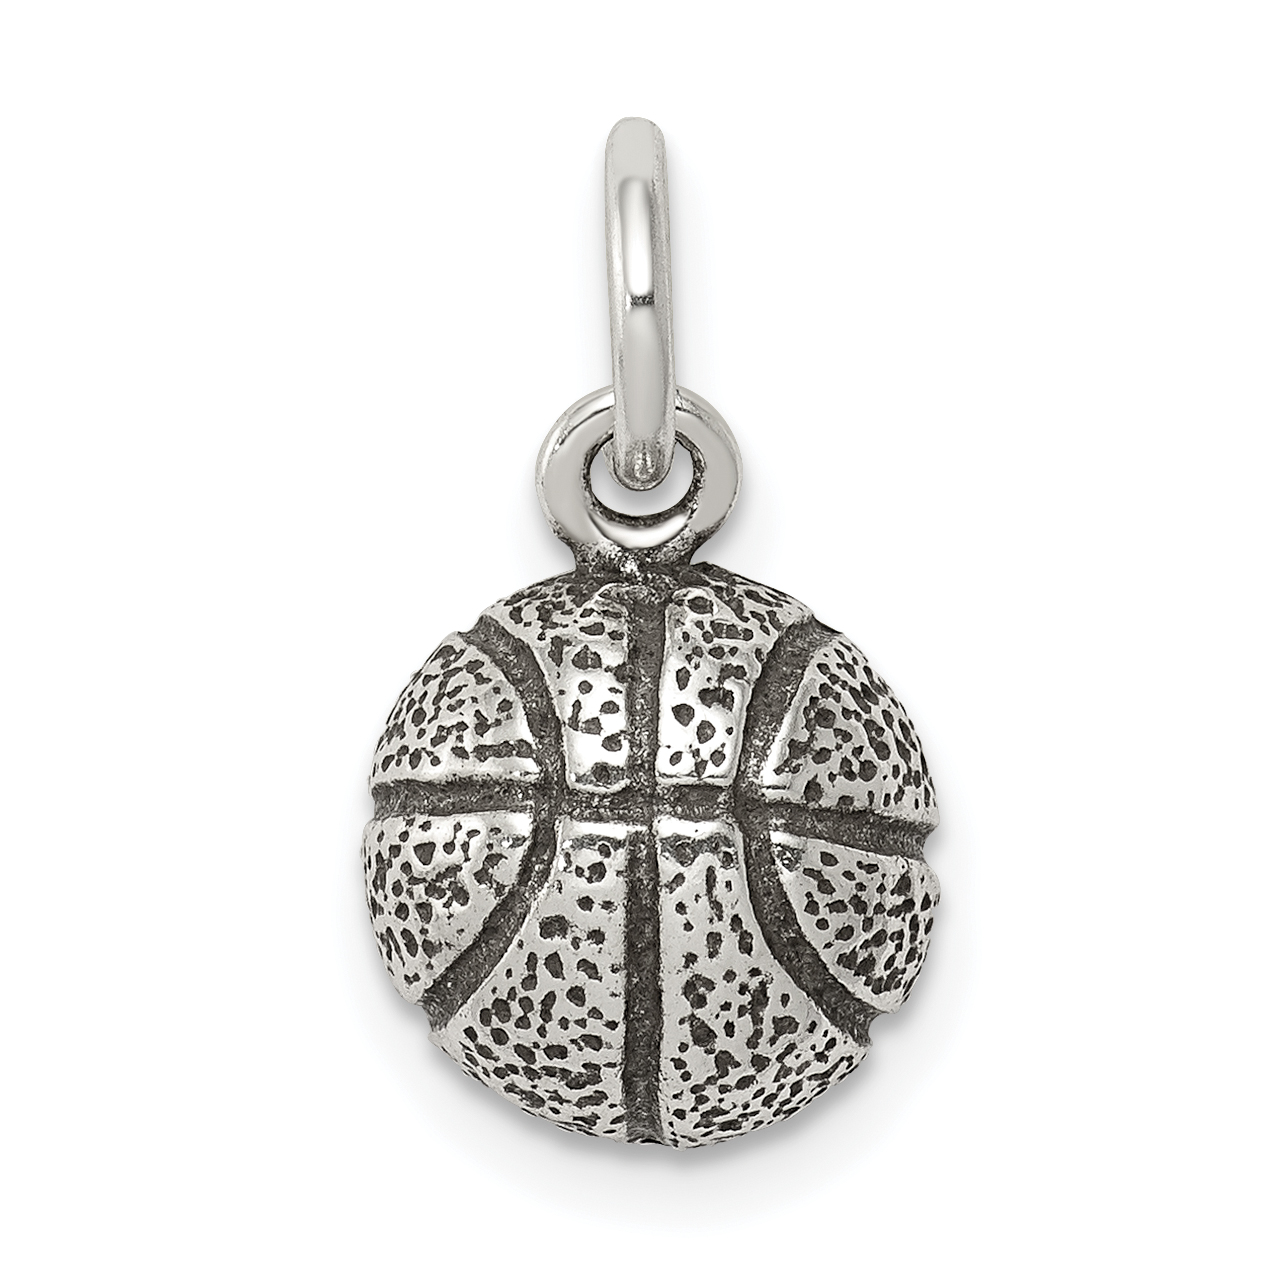 925 Sterling Silver Basketball Pendant Charm Necklace Sport Fine Jewelry Gifts For Women For Her - image 2 of 2